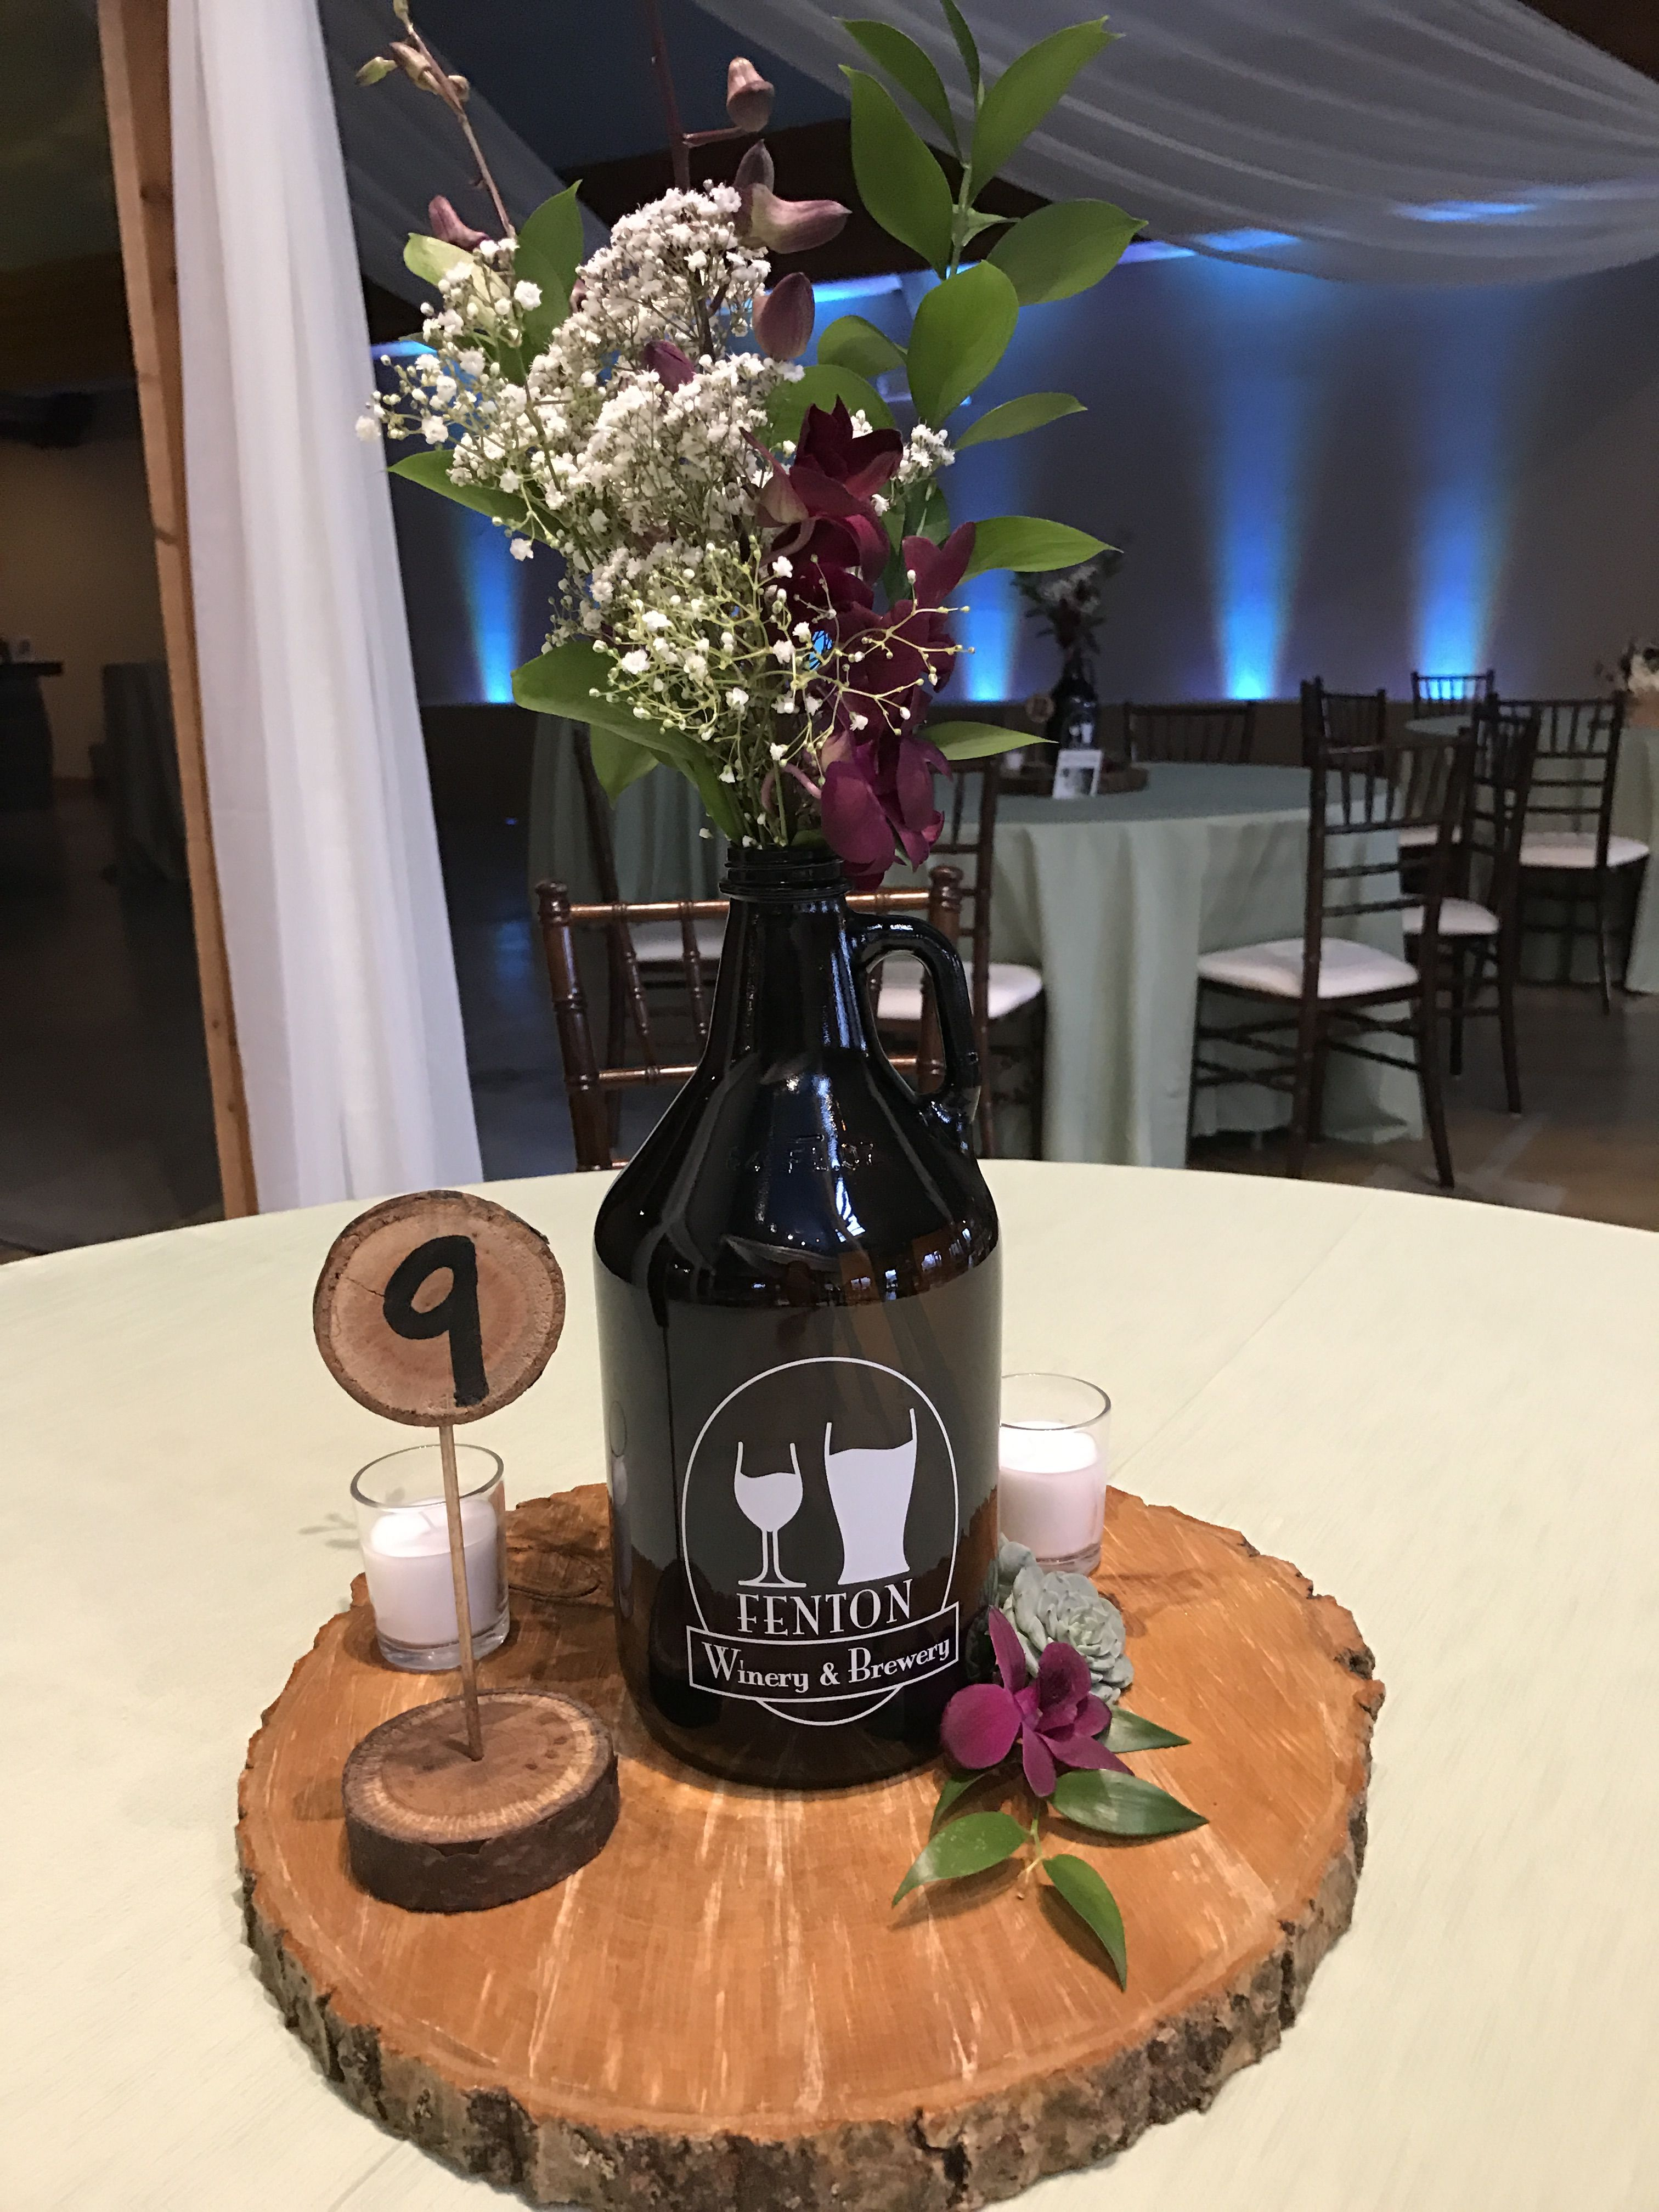 Growlers used for a table centerpiece brewery wedding rustic growlers used for a table centerpiece brewery wedding rustic outdoor theme in fenton junglespirit Choice Image